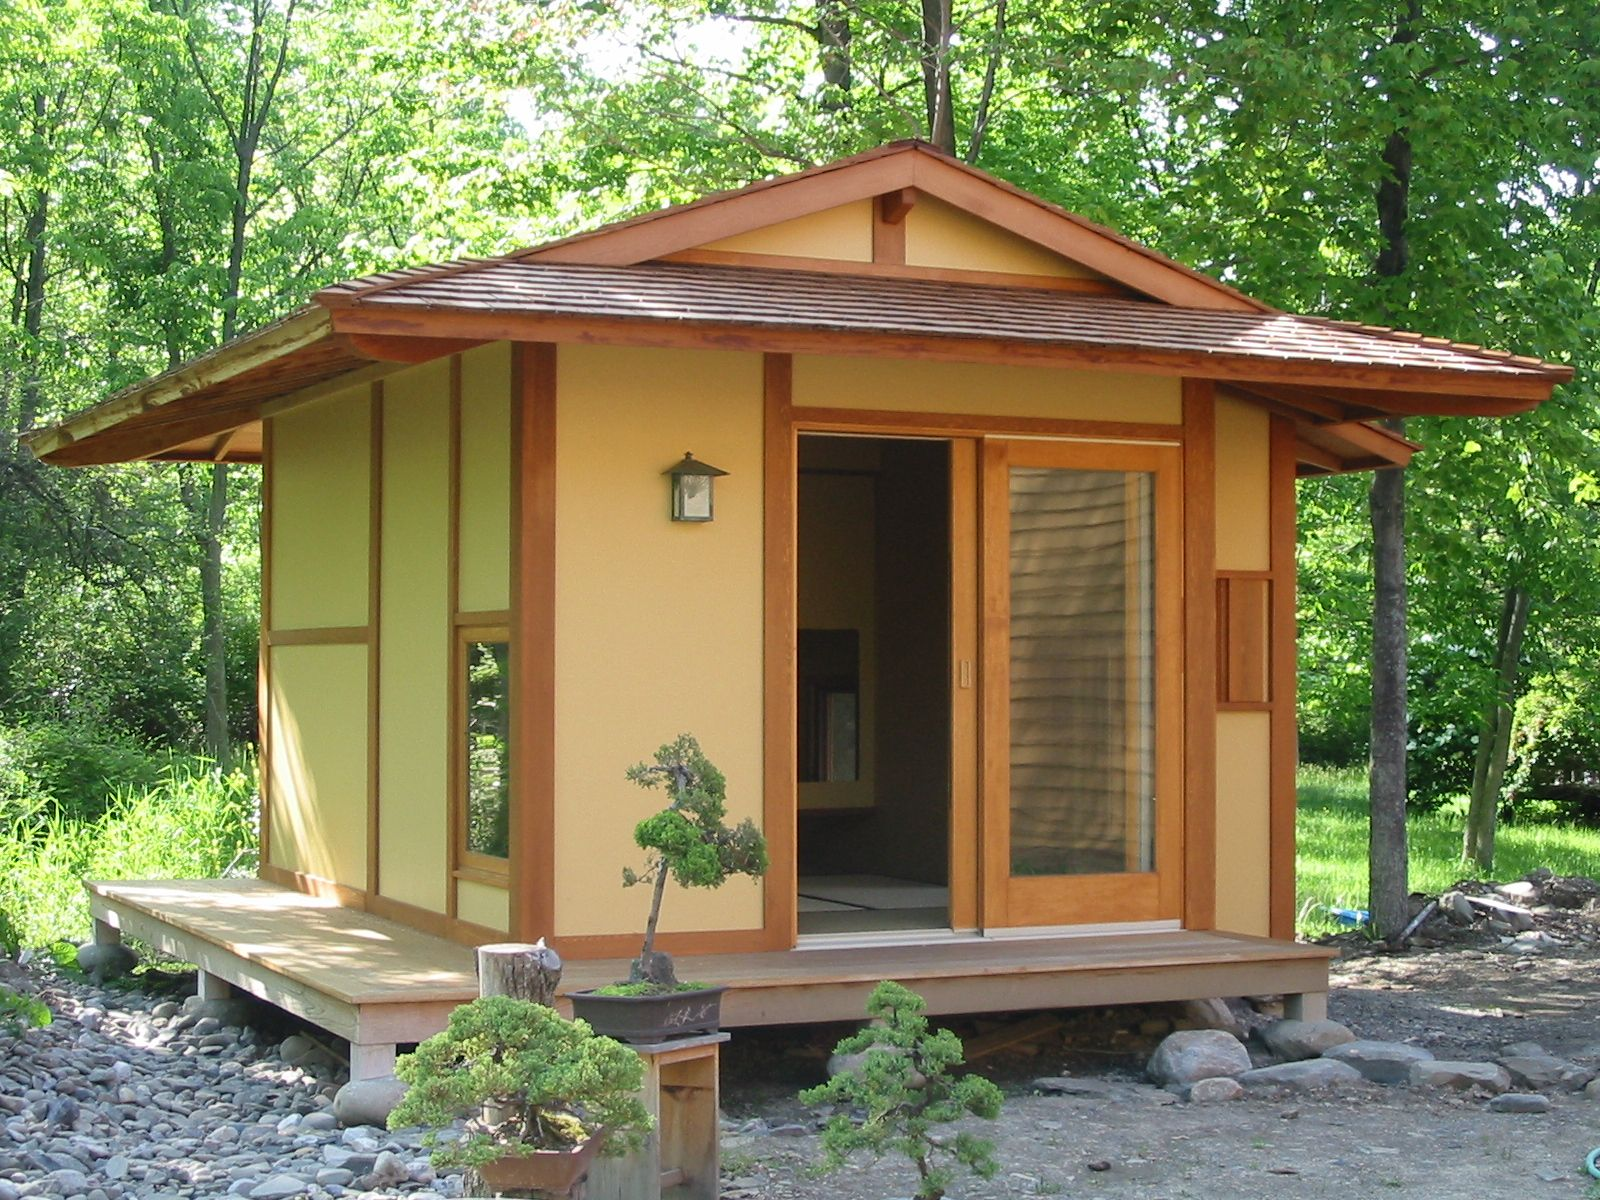 Pan Burlingham Tea House, Ithaca NY, USA, Designed By Shickel Architecture.